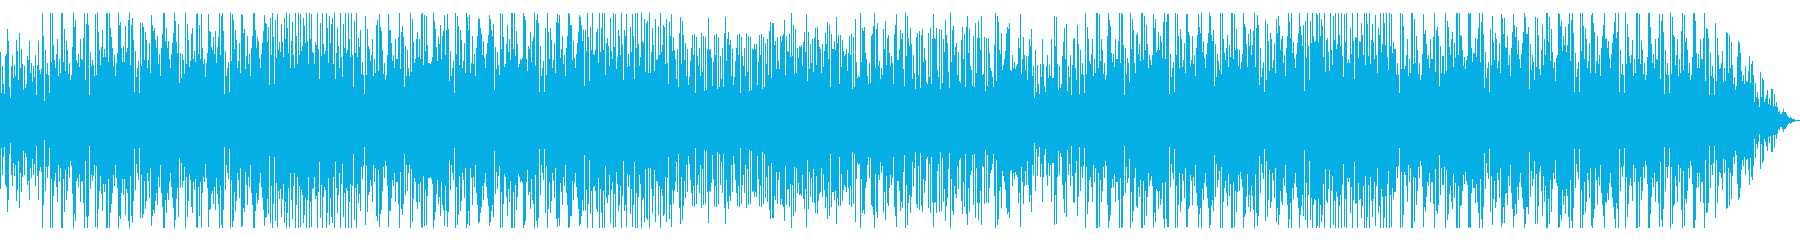 A comical town stranger African + Chinese style's reproduced waveform